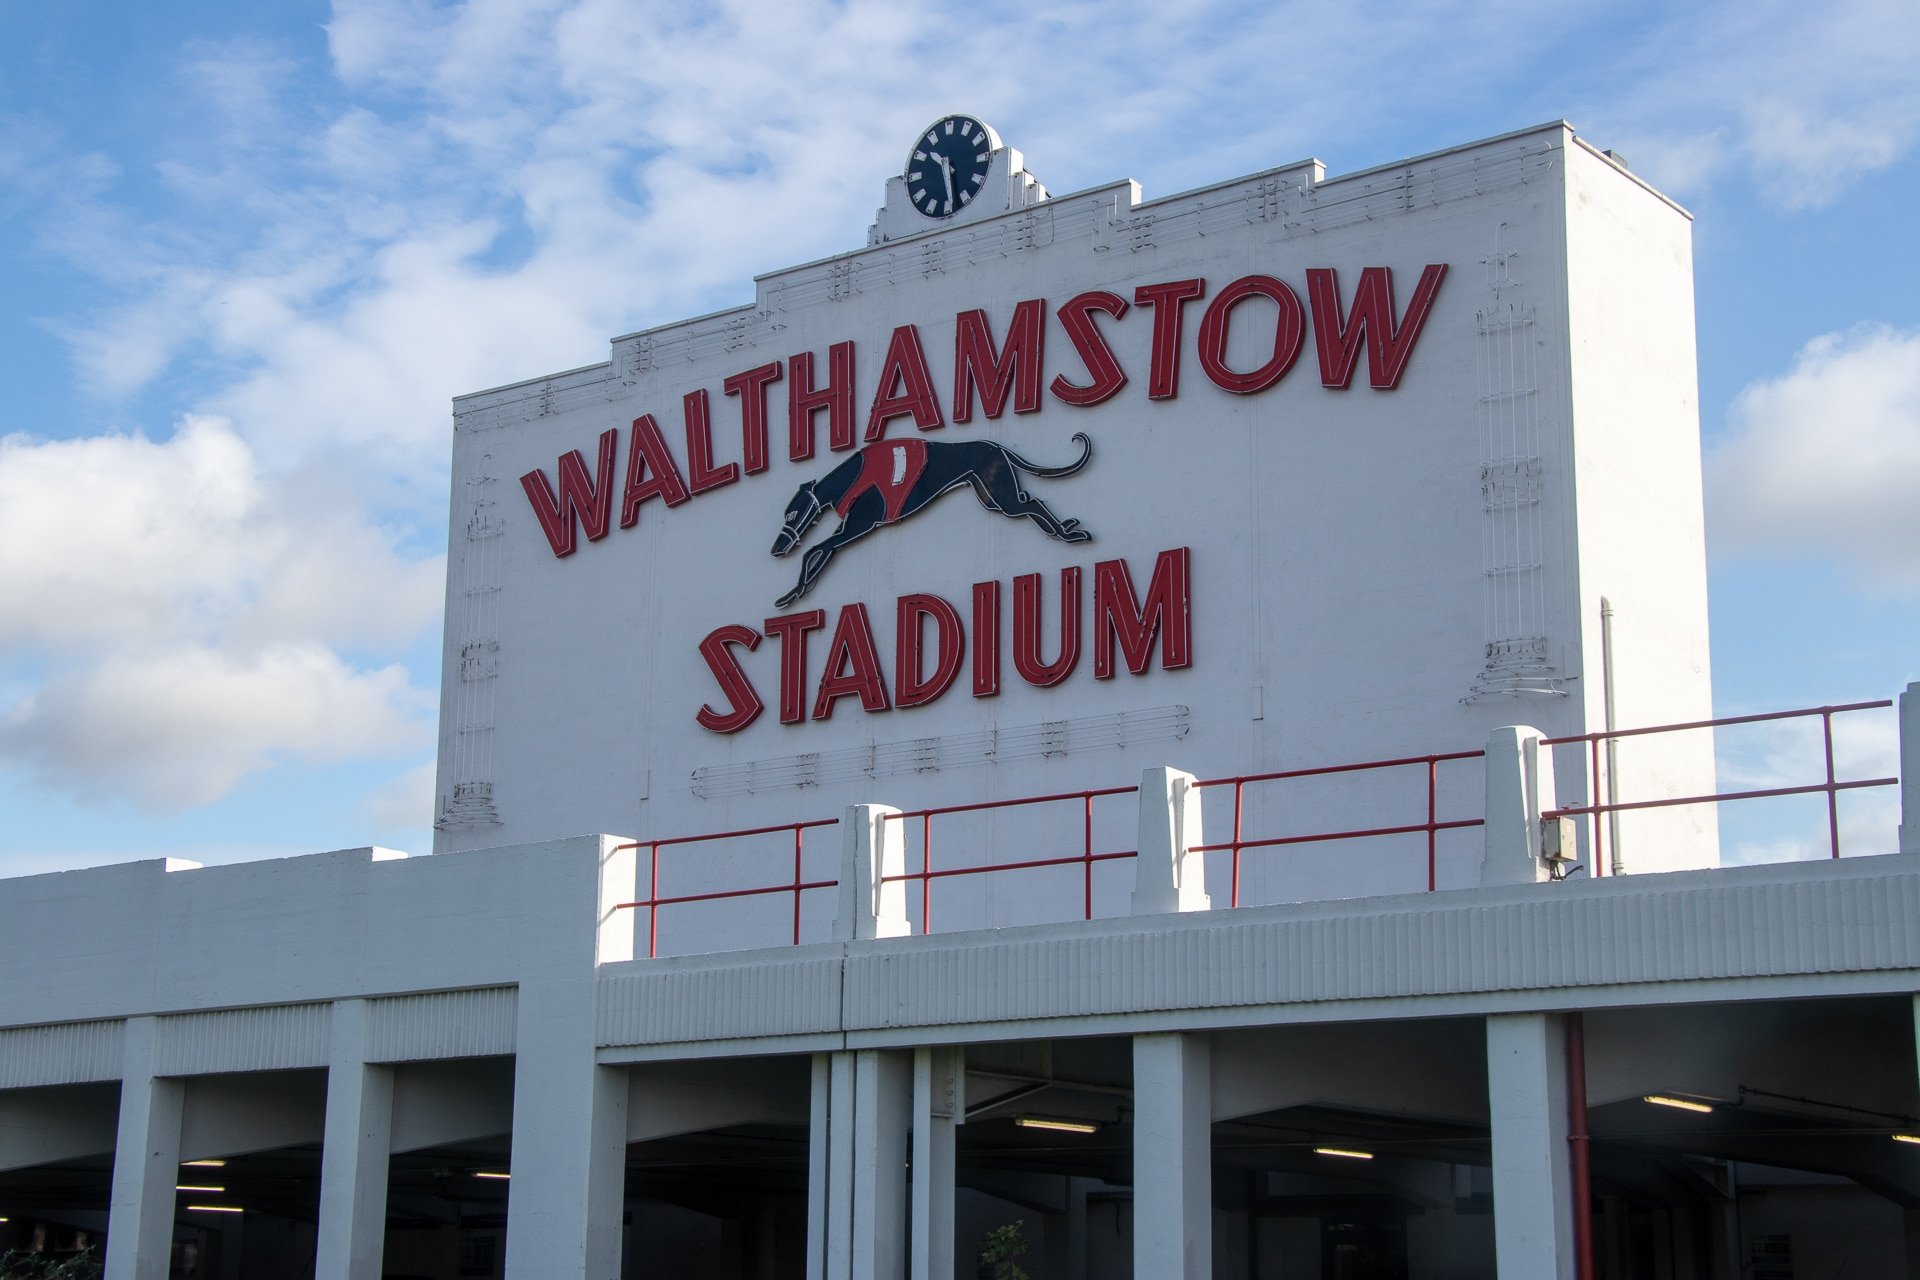 Walthamstow Dog Stadium